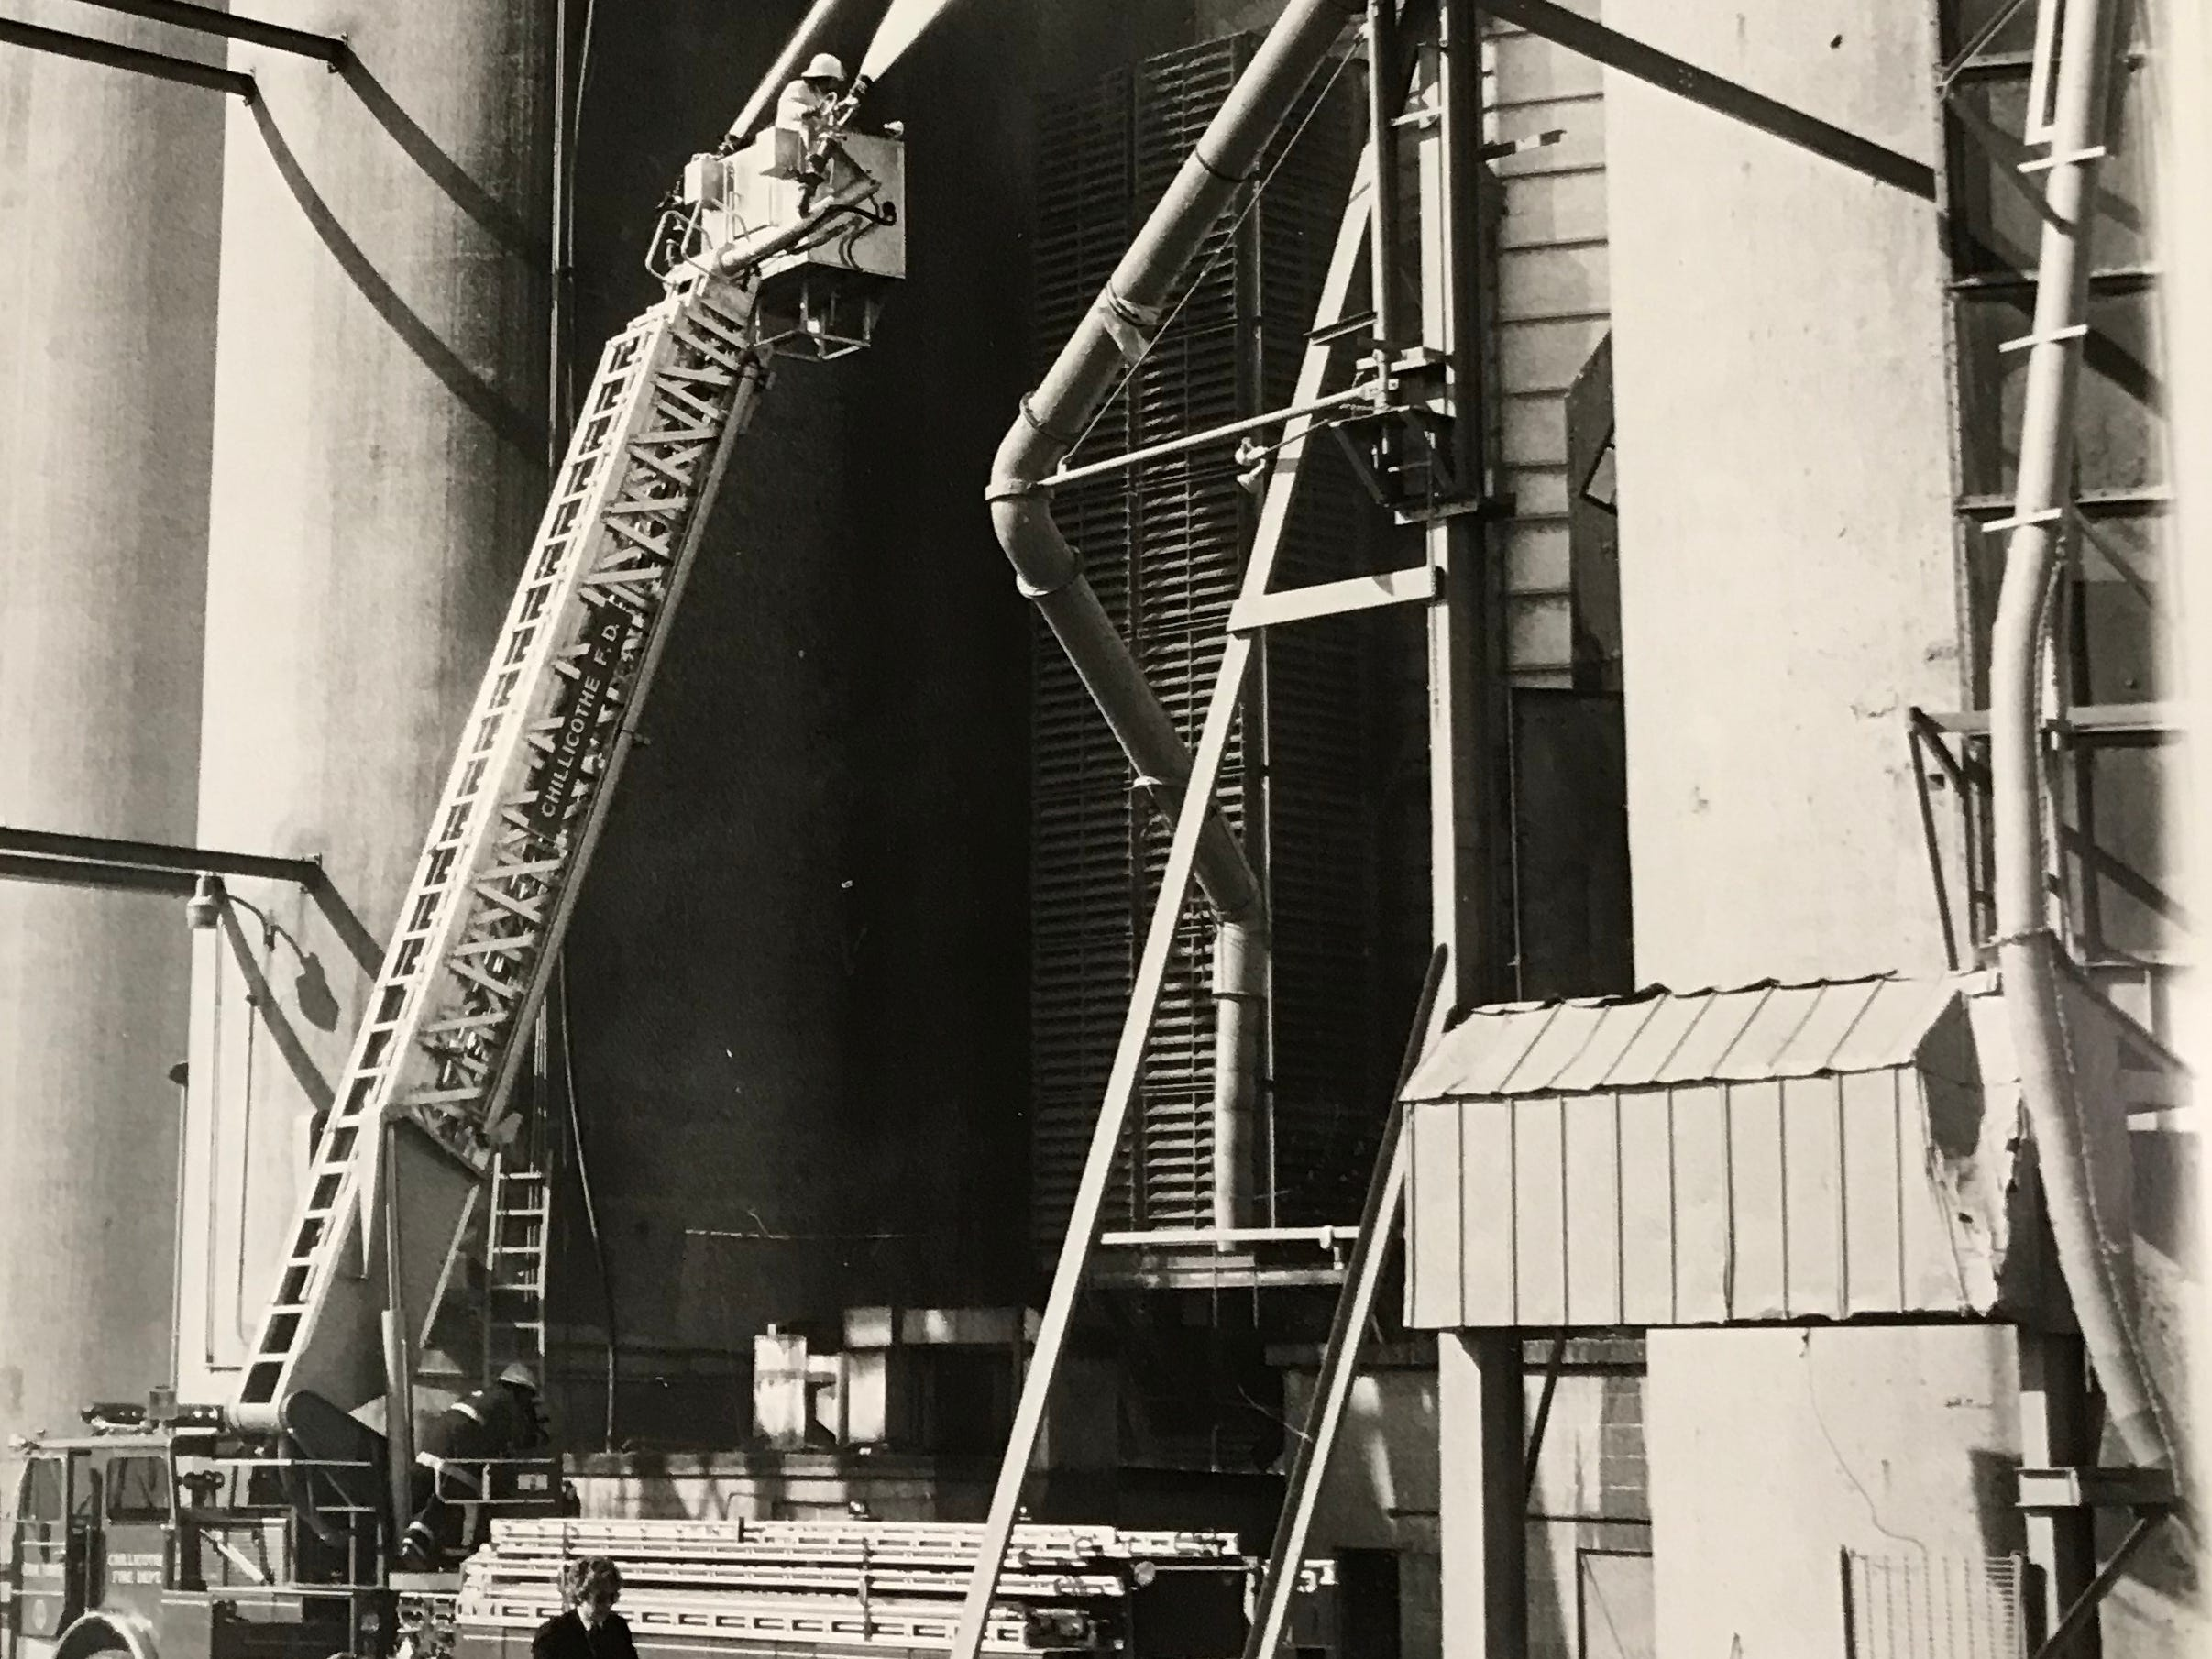 In October 1984, the Chillicothe Fire Department provided mutual aid to fight a fire in an elevator dryer at Pickaway Grain Co.